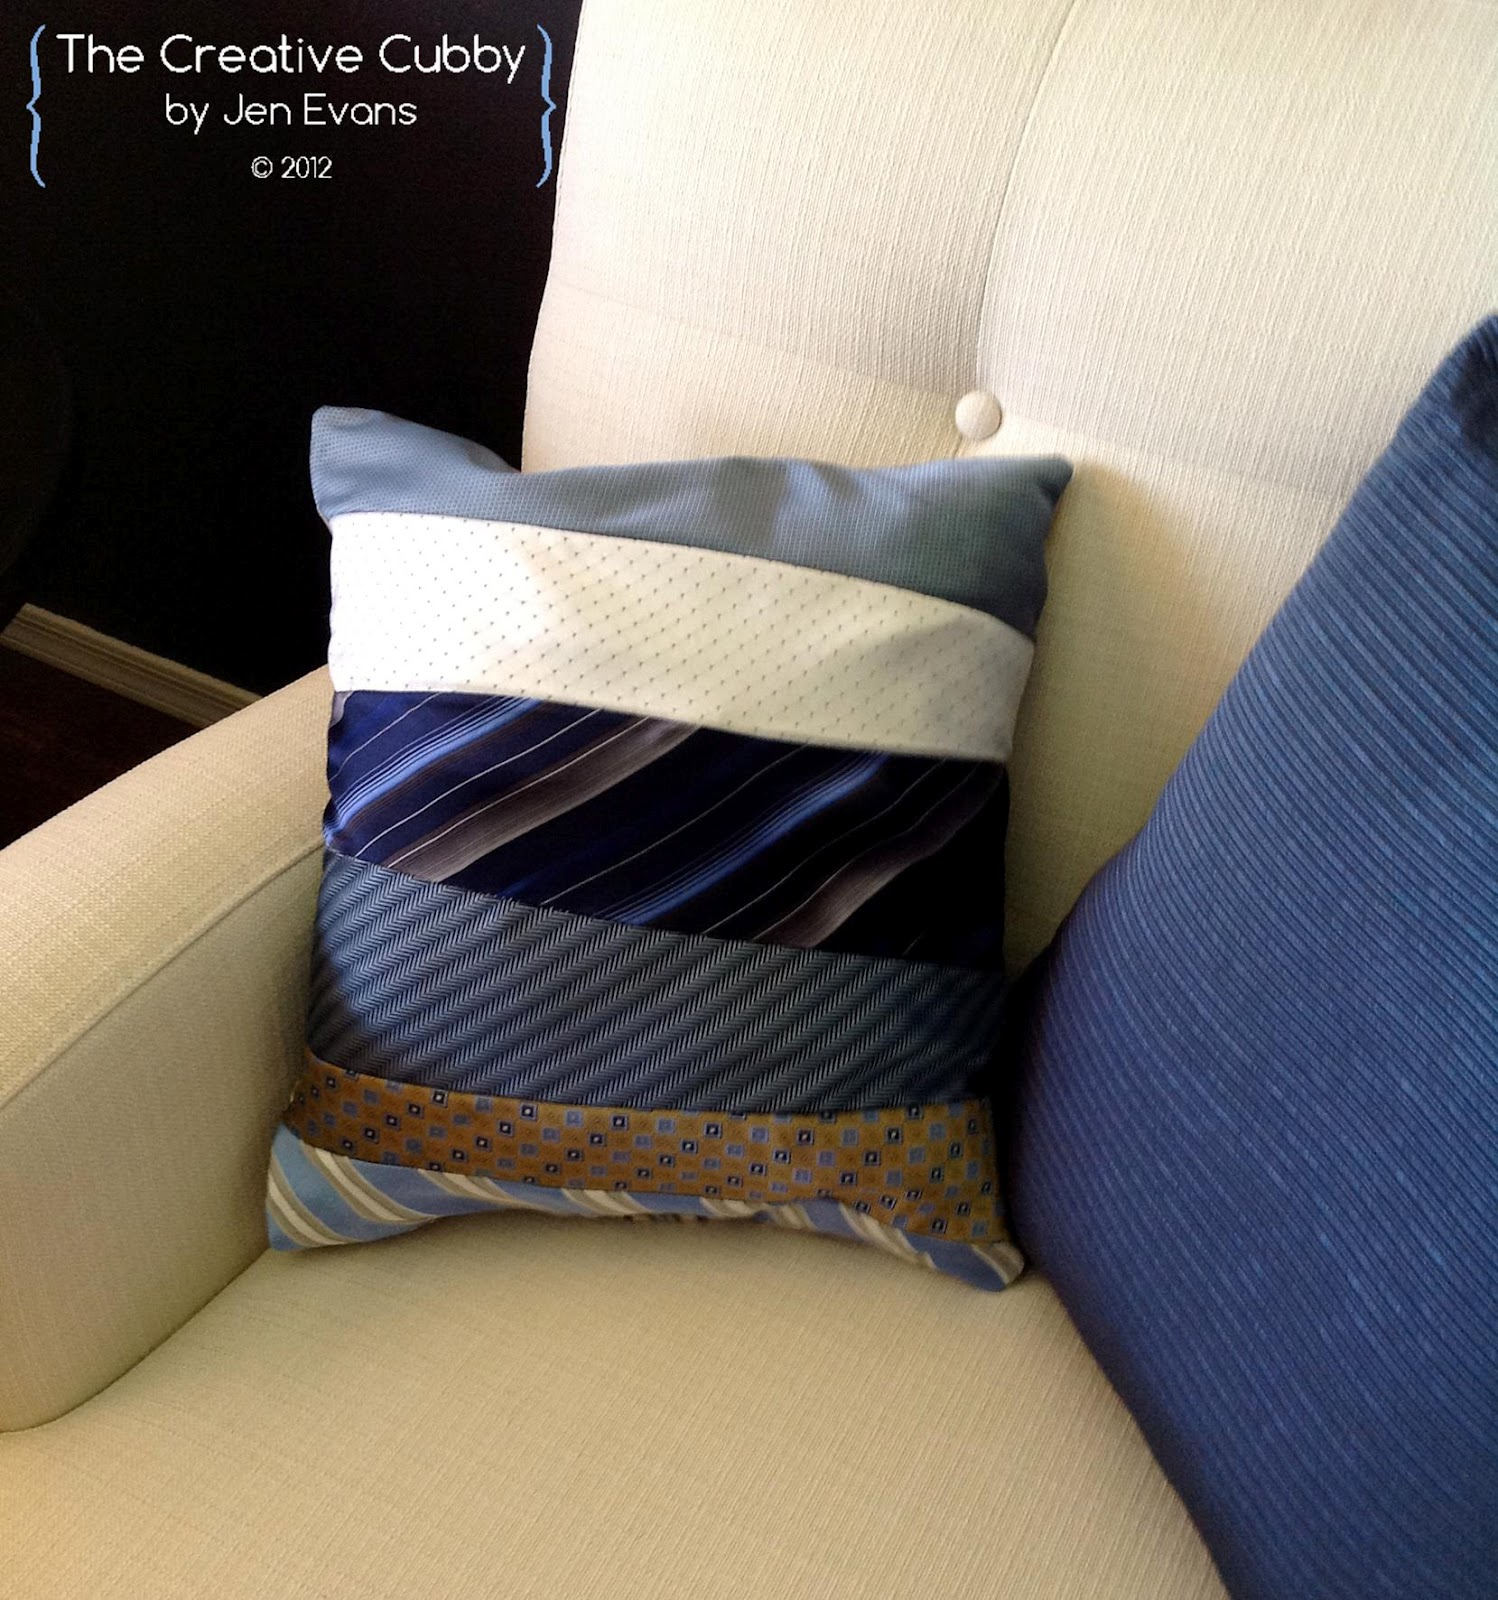 How To Make A Tie Throw Pillow : The Creative Cubby: Preppy Projects Week: Tie Pillow